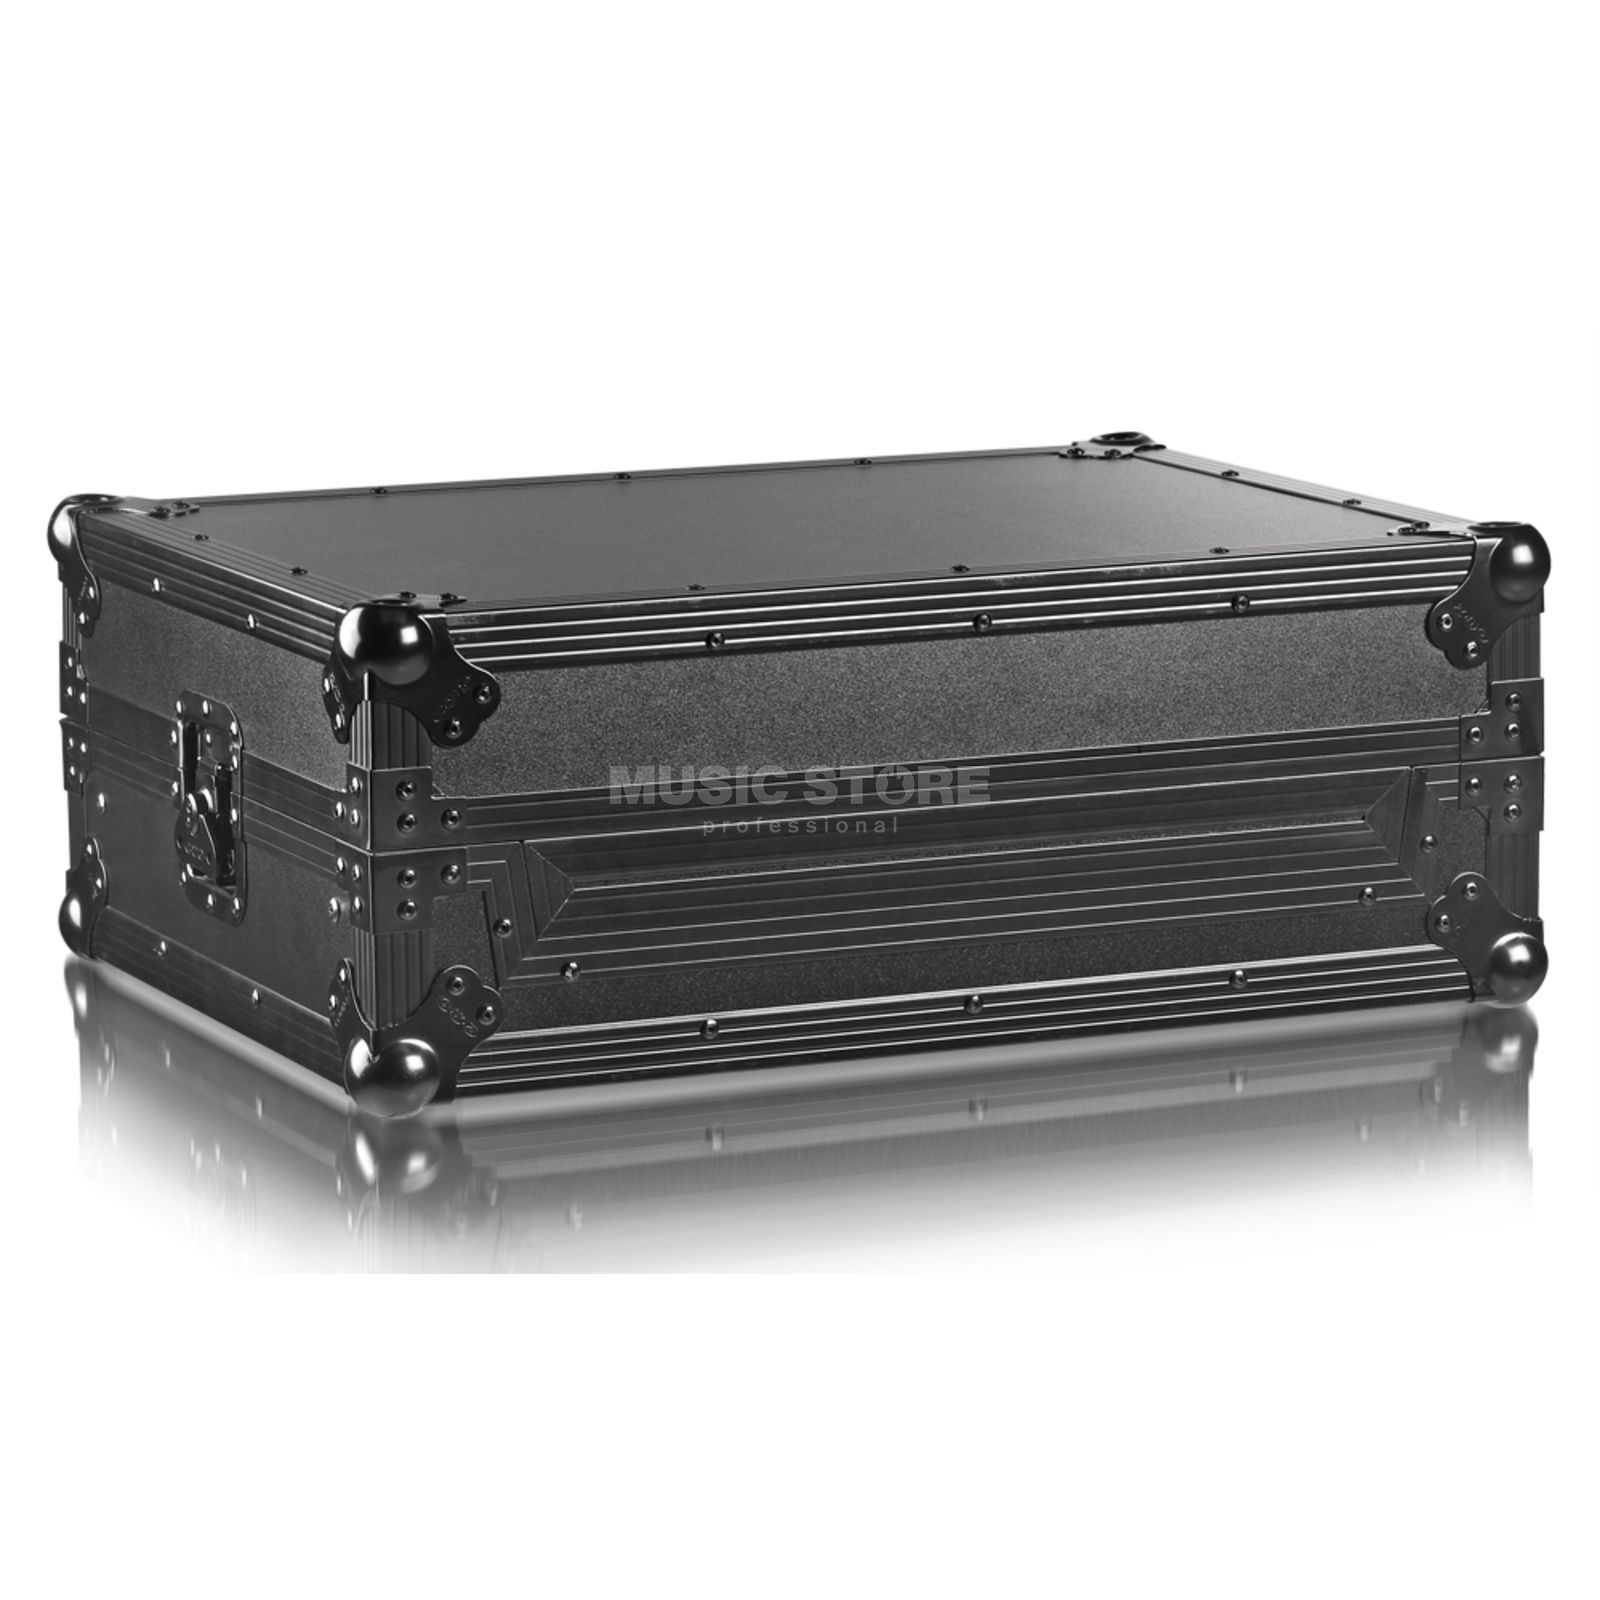 Zomo Flightcase S4 PLUS NSE for NI S4 + Laptop Product Image